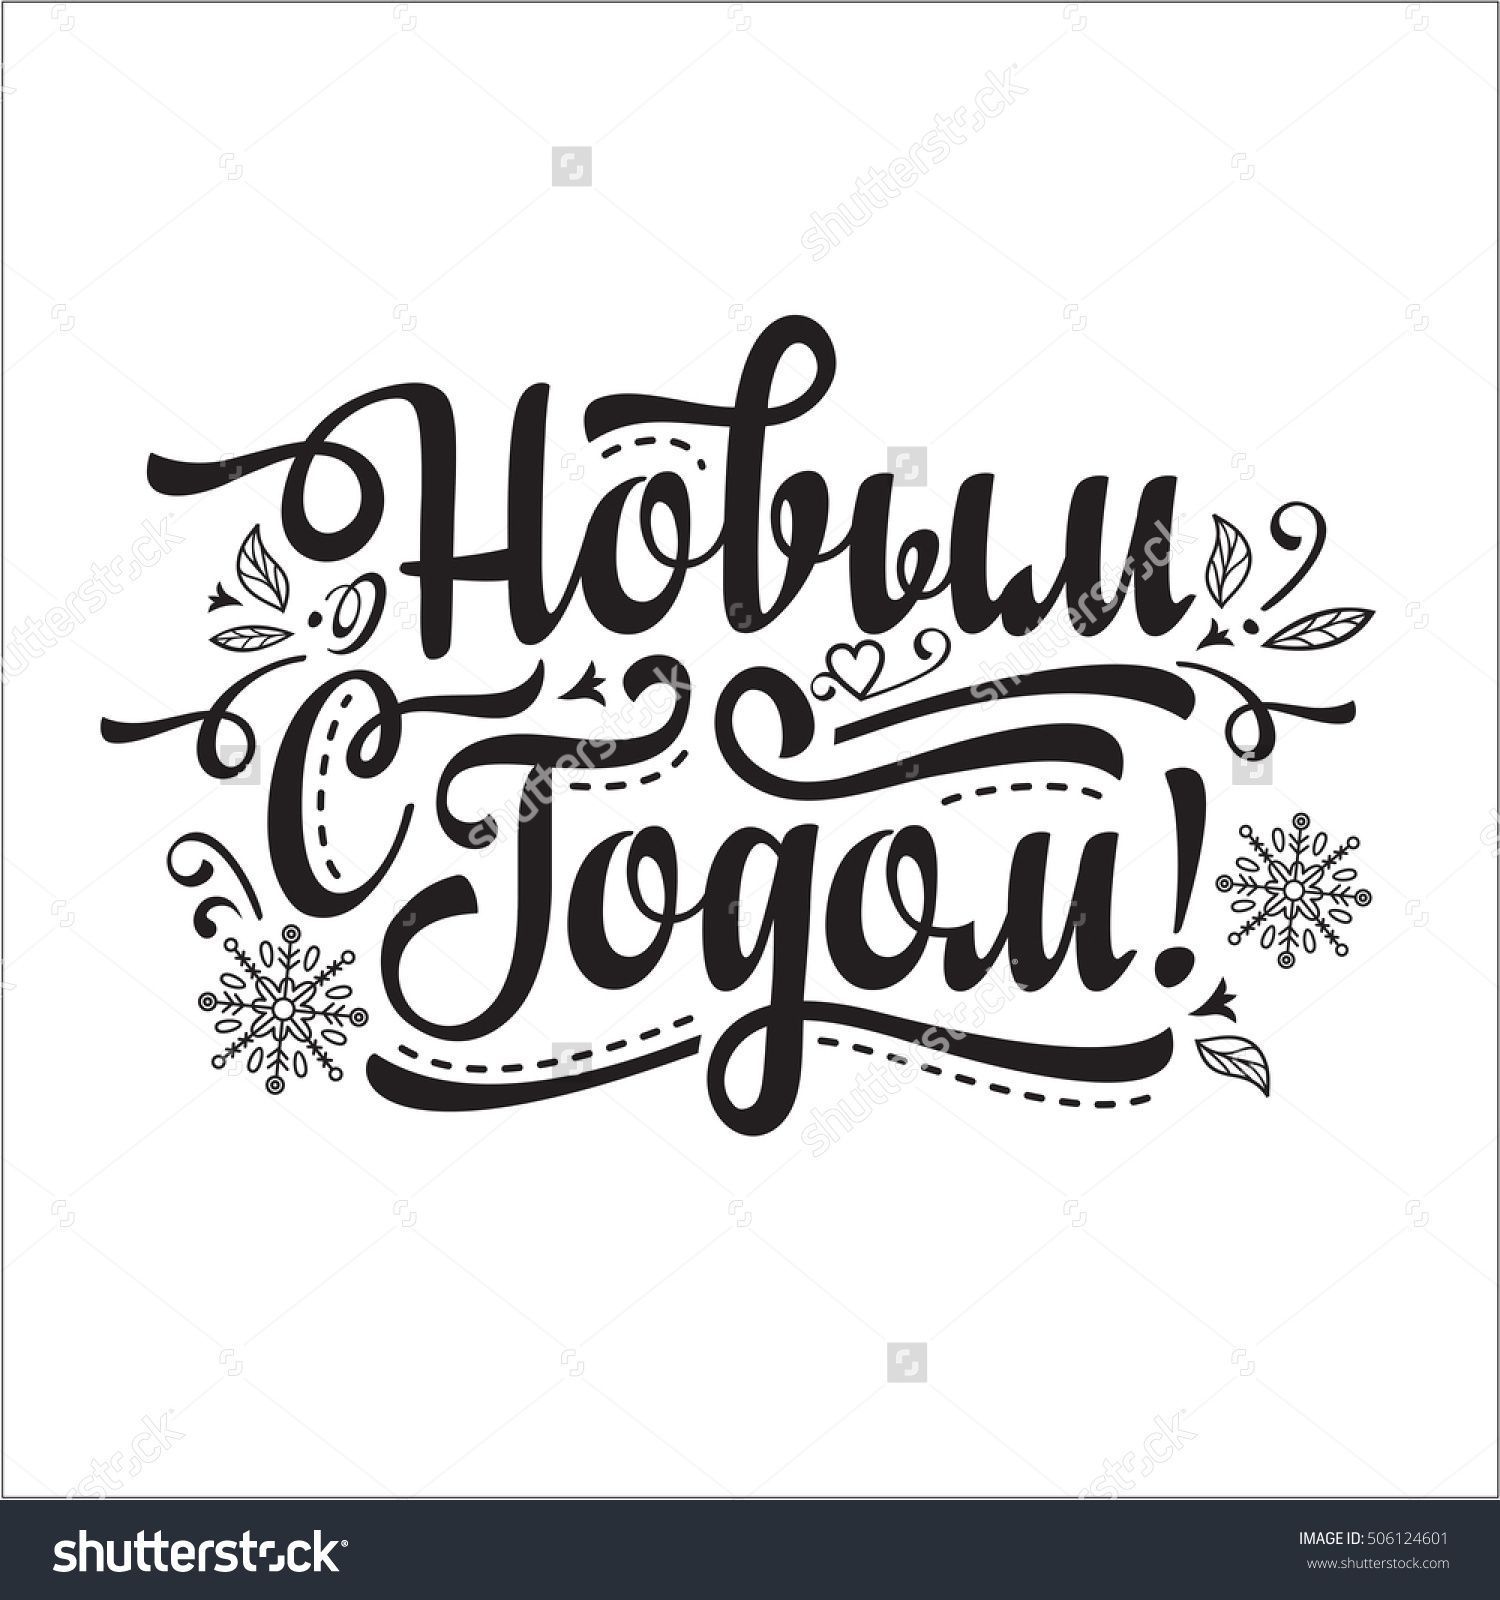 New year card holiday background lettering composition with phrase lettering composition with phrase in russian language warm wishes for happy holidays in cyrillic english translation happy new year kristyandbryce Choice Image